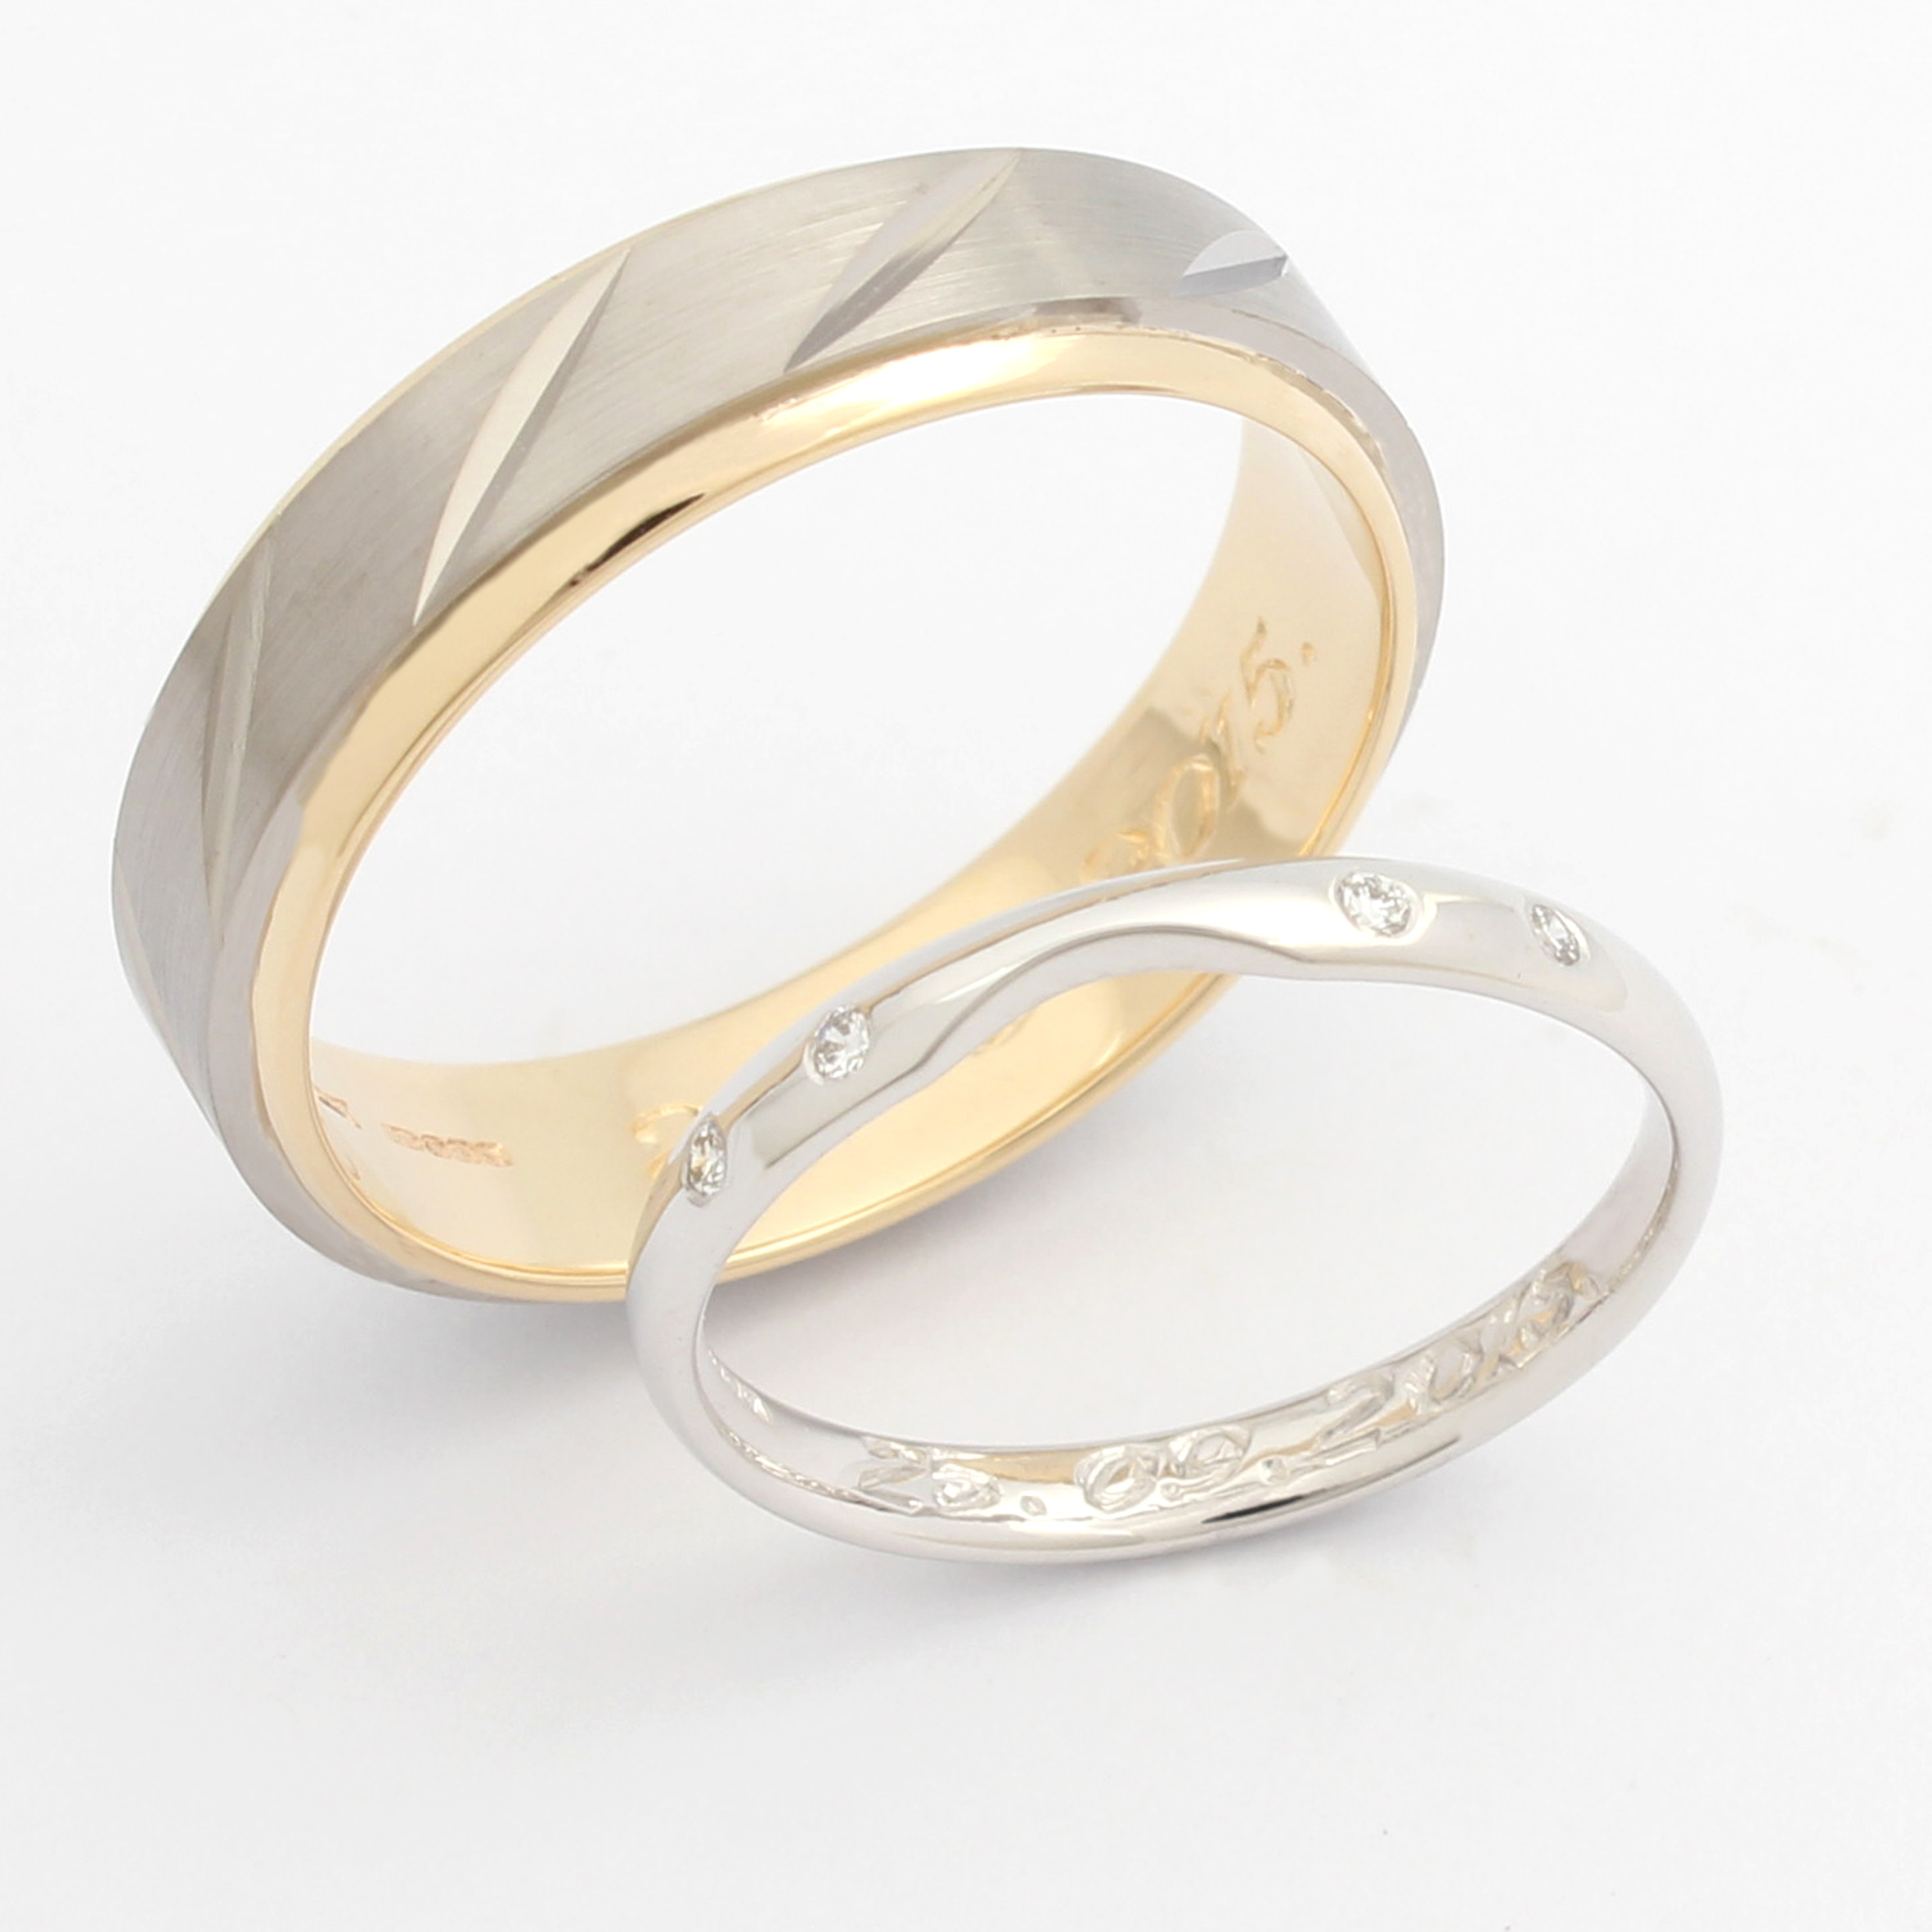 wedding gallery of inspirational new audrey gold s claude ring rings patterned band jewellery la yellow halo